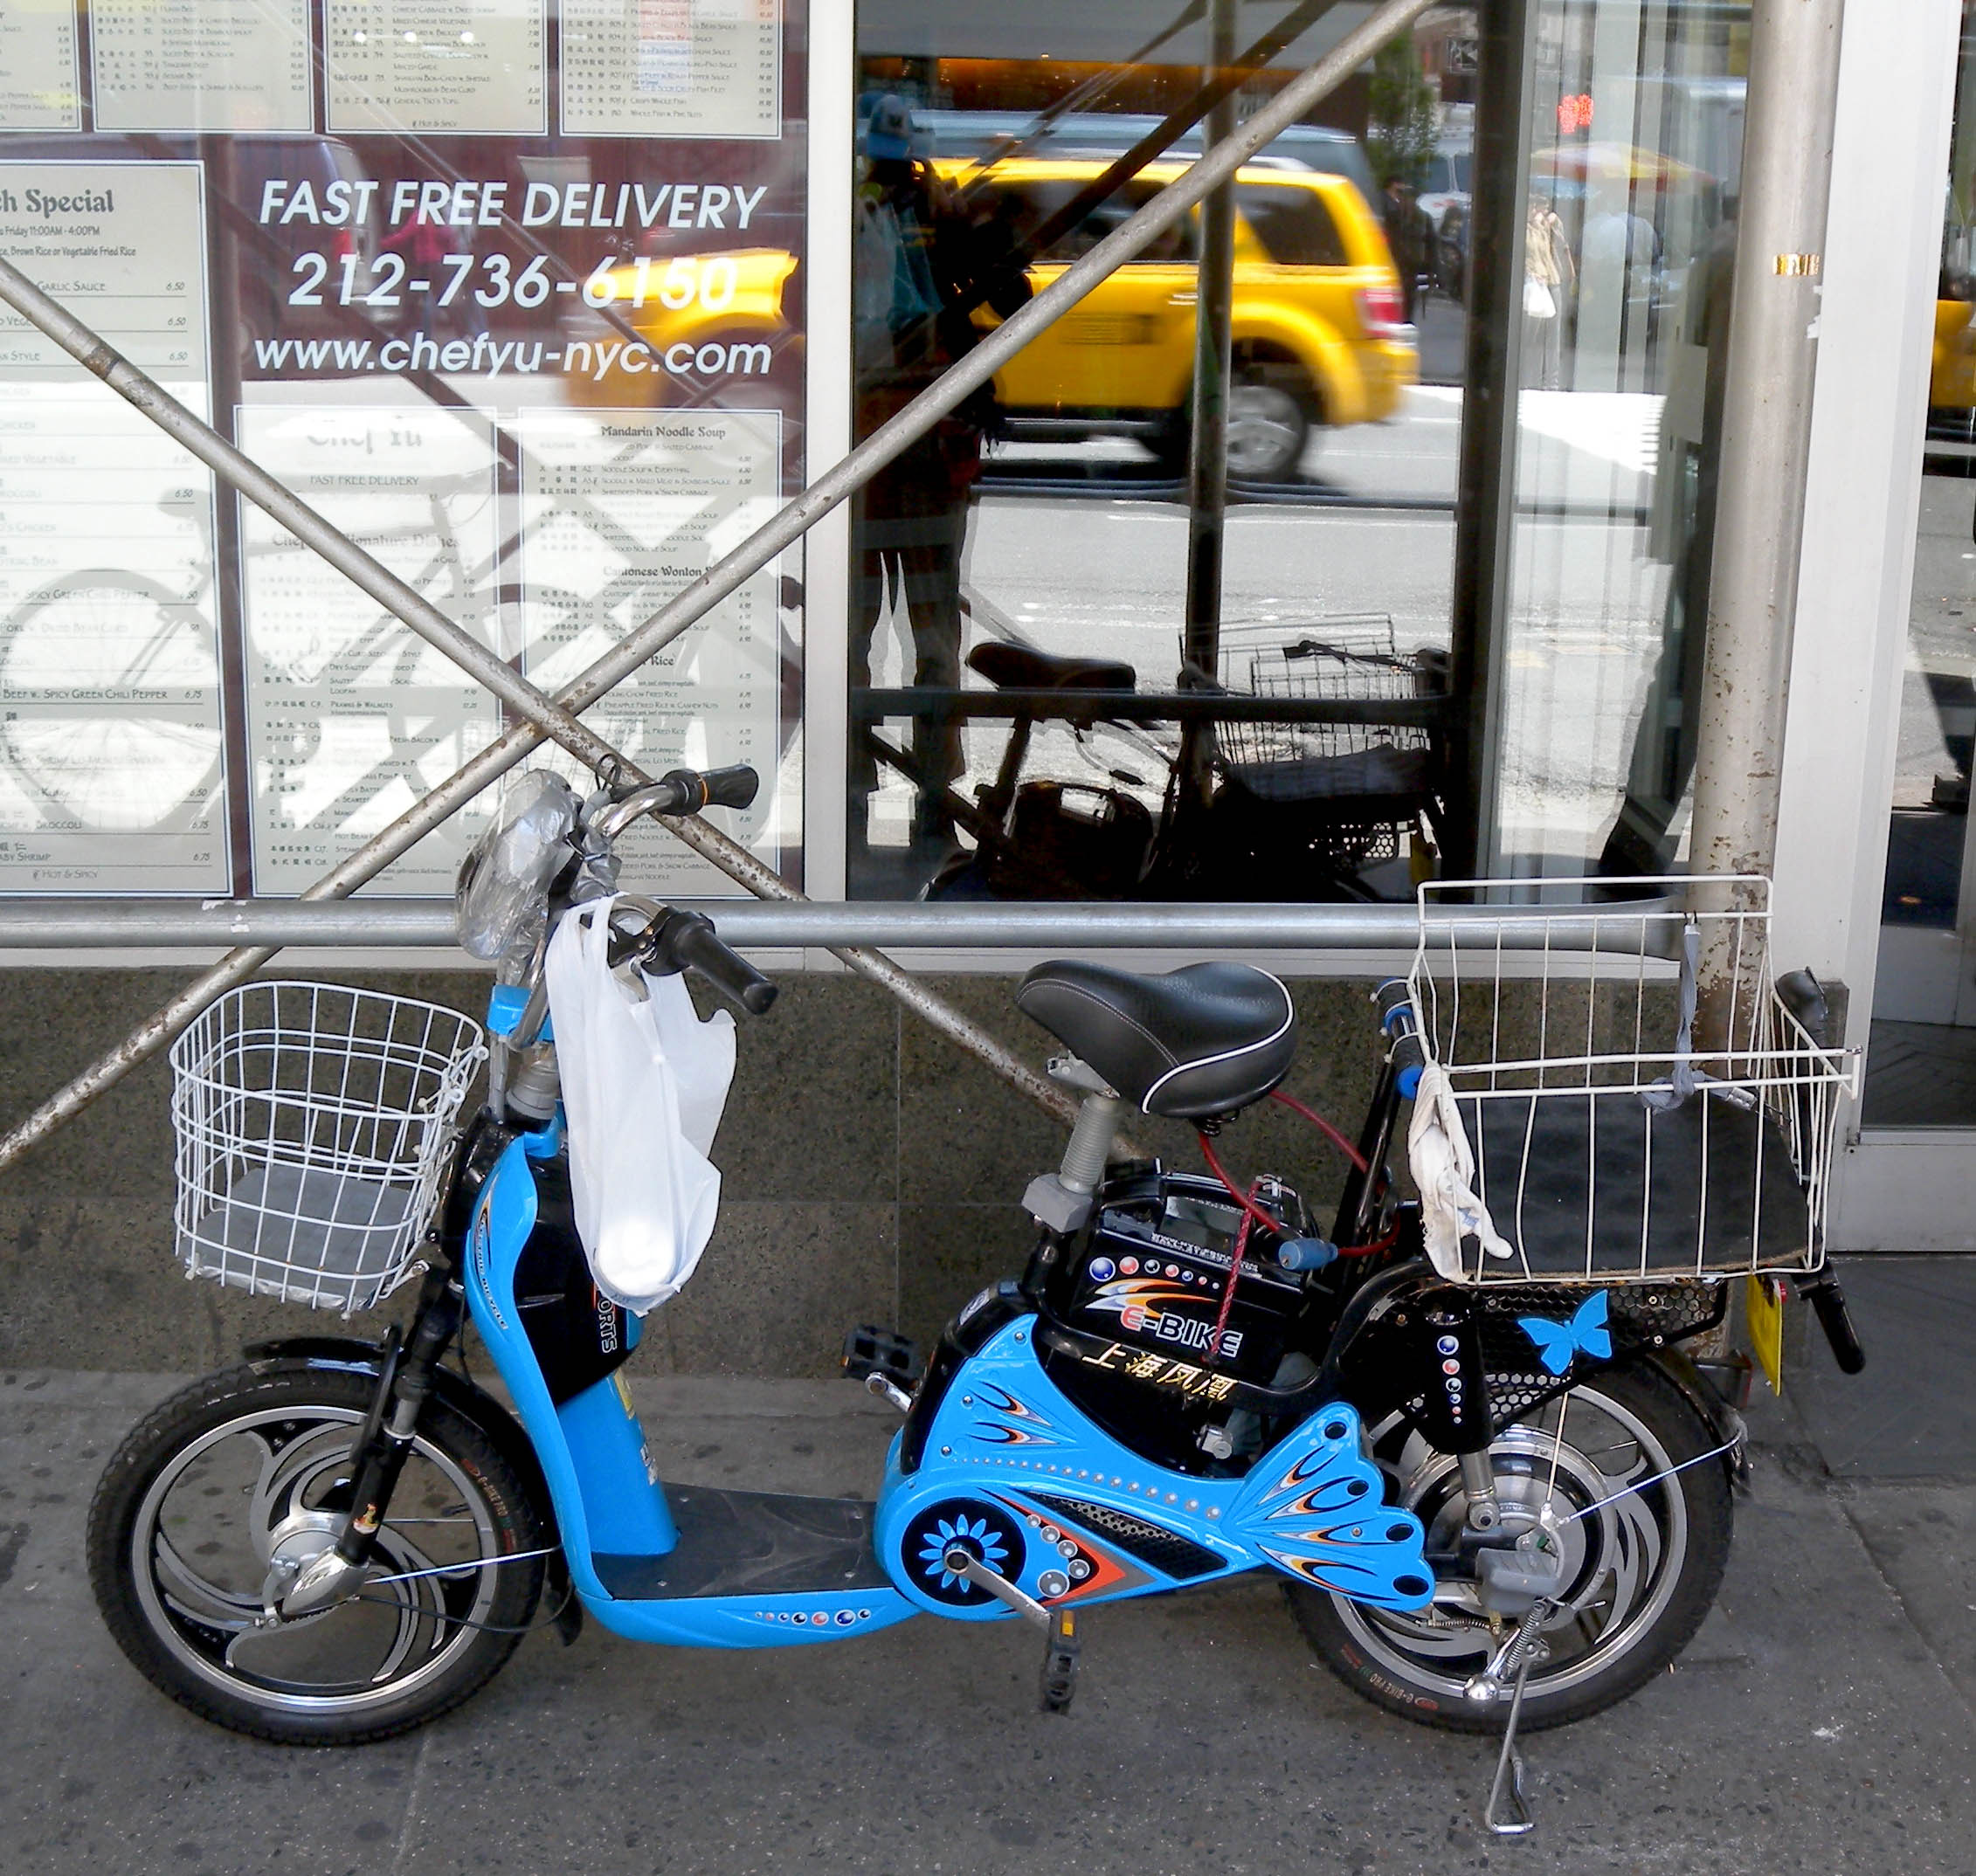 E-bike now legal in NYC